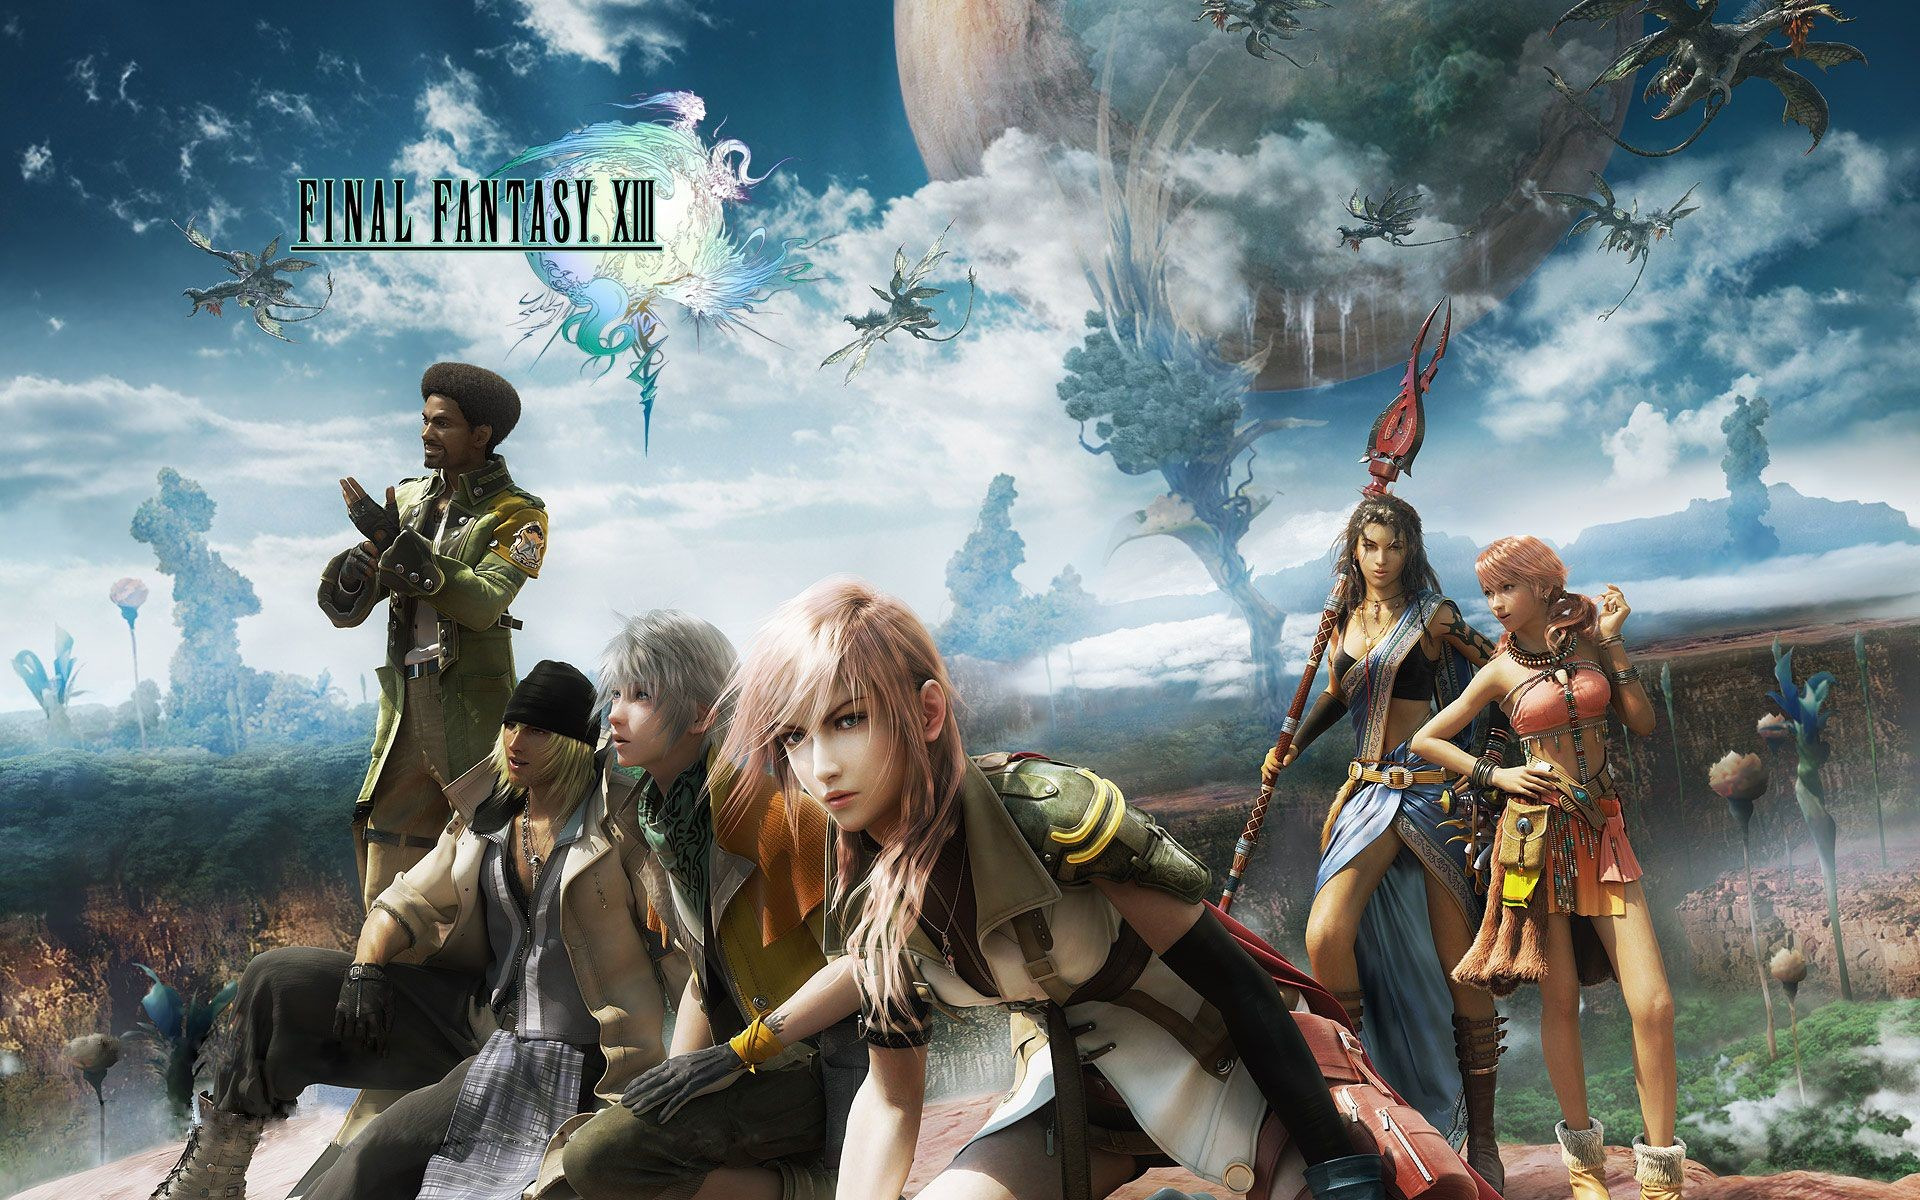 1920x1200 Final Fantasy XIII HD Wallpapers in HD